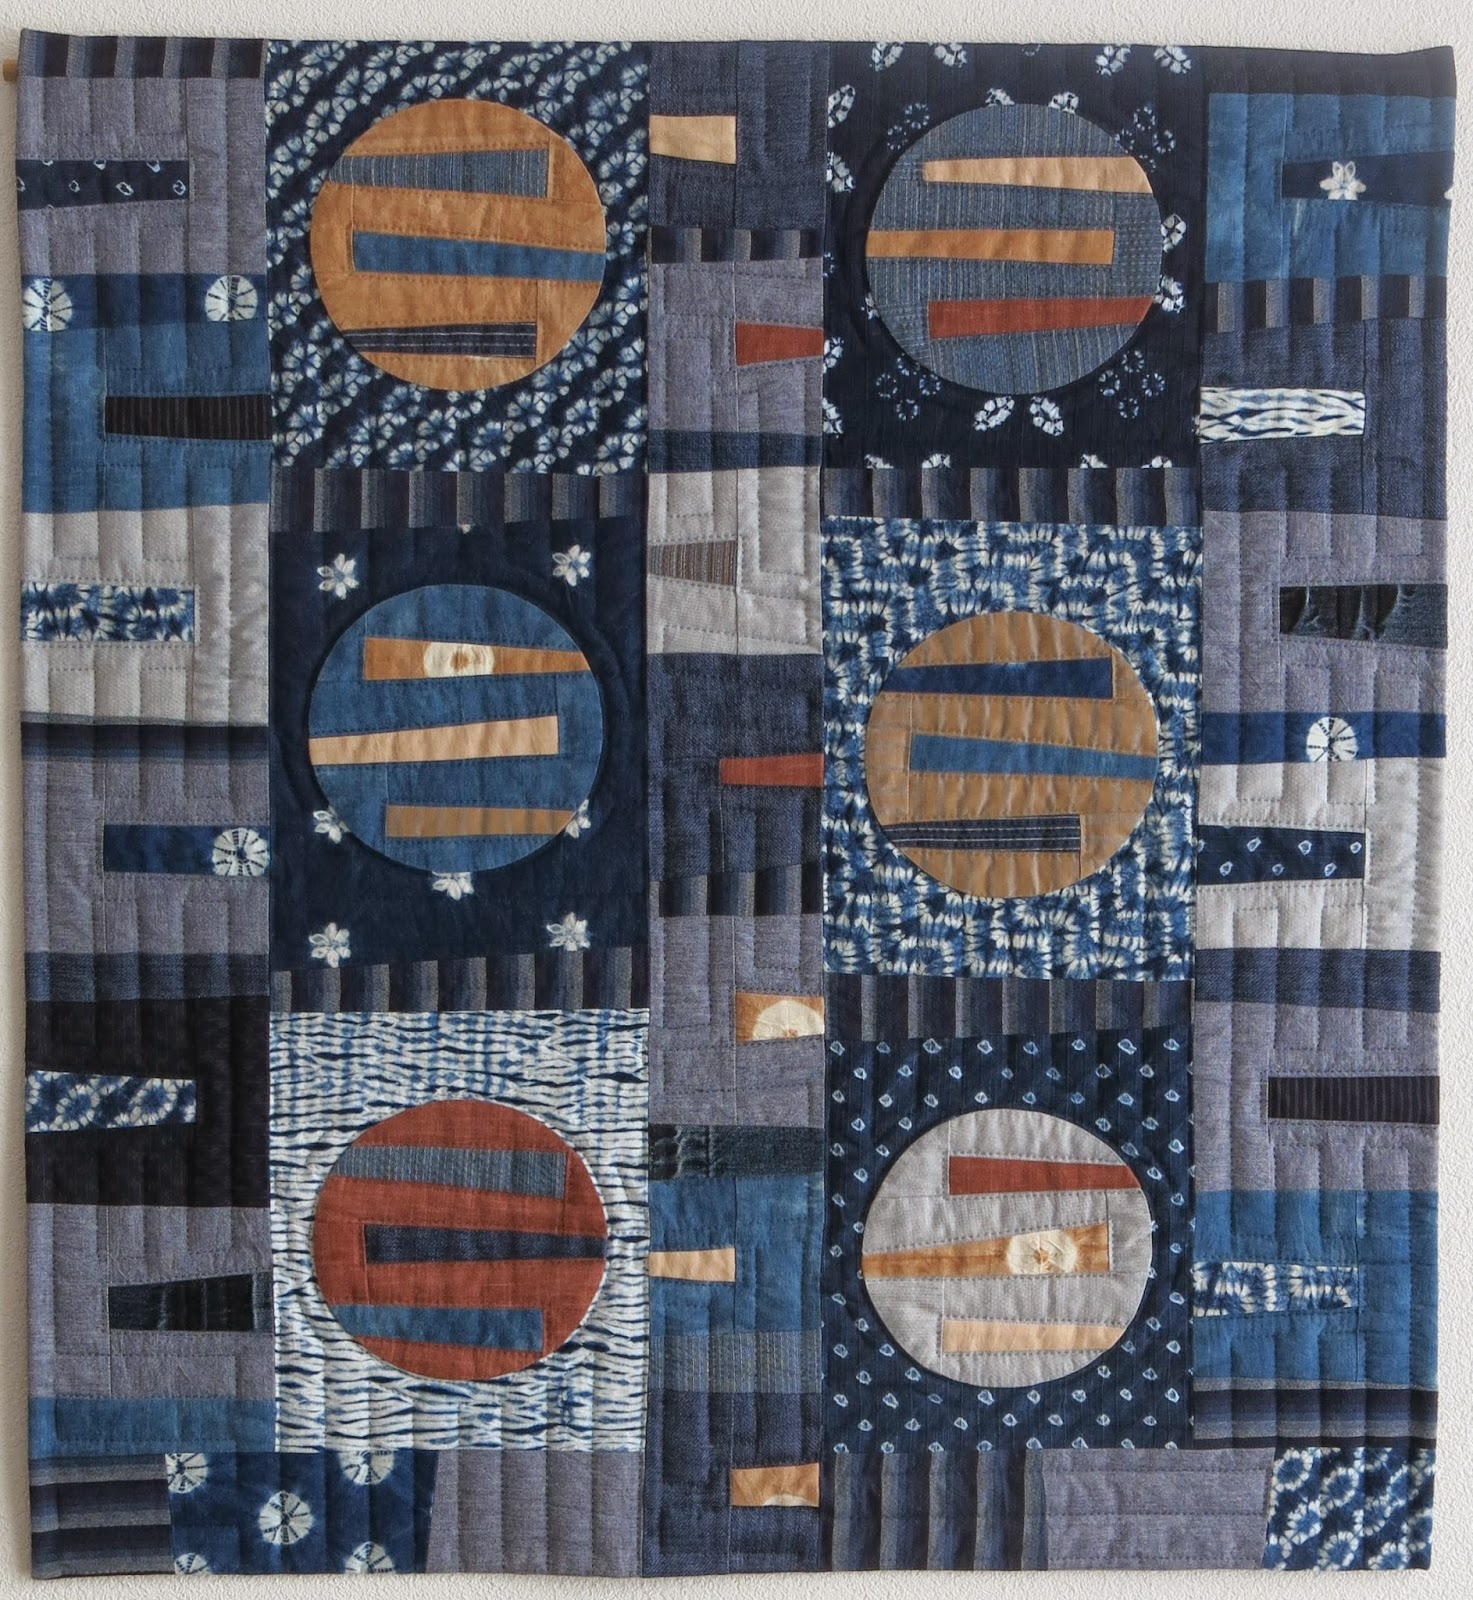 Quiltmania Competition - Indigo Variations